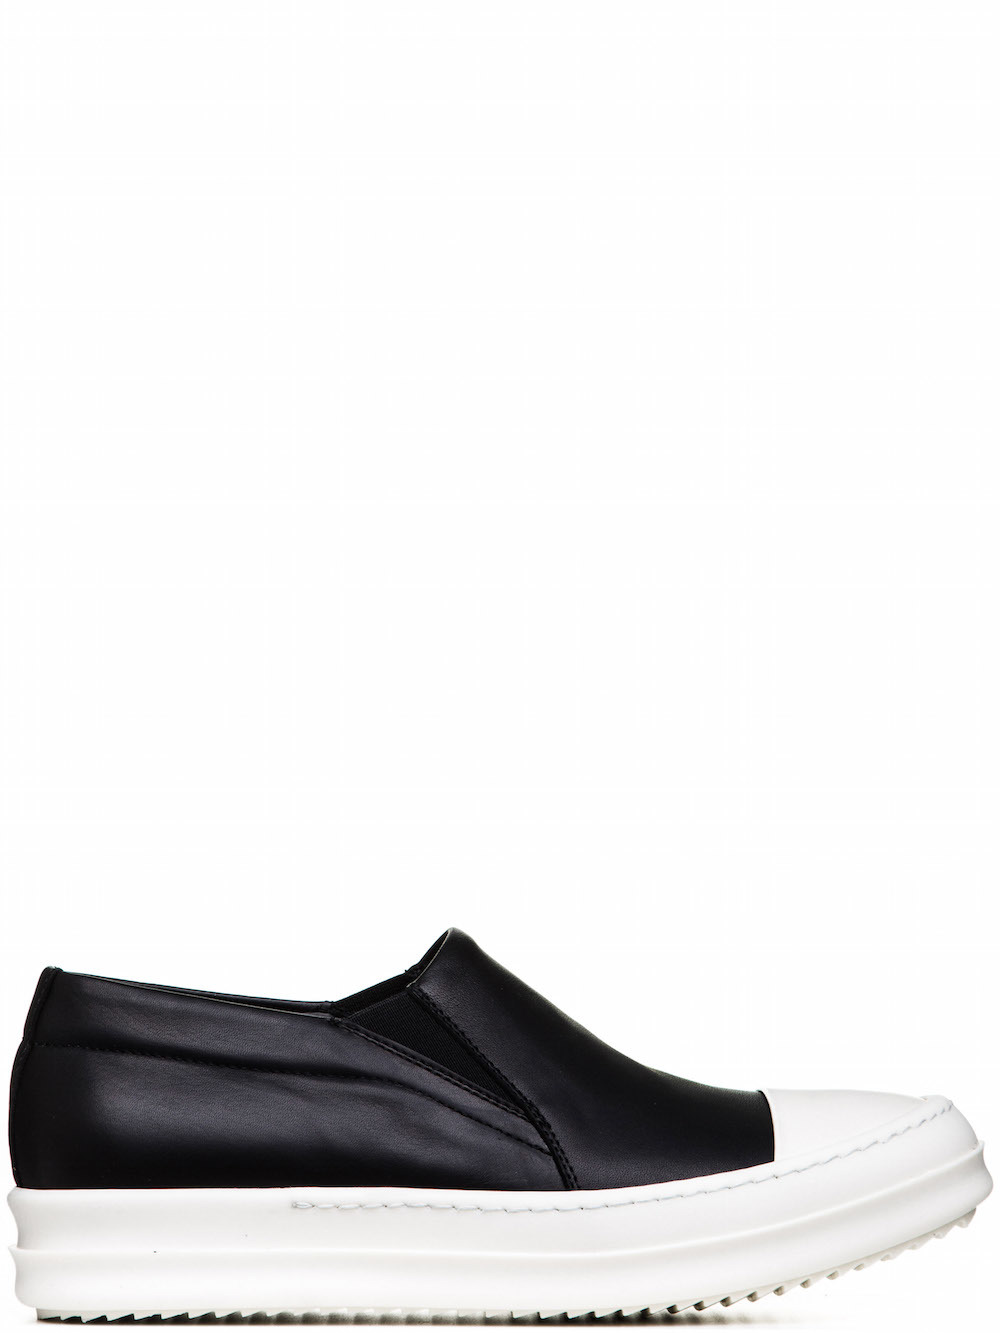 Rick Owens slip-on dress - Negro anjzOJwjq